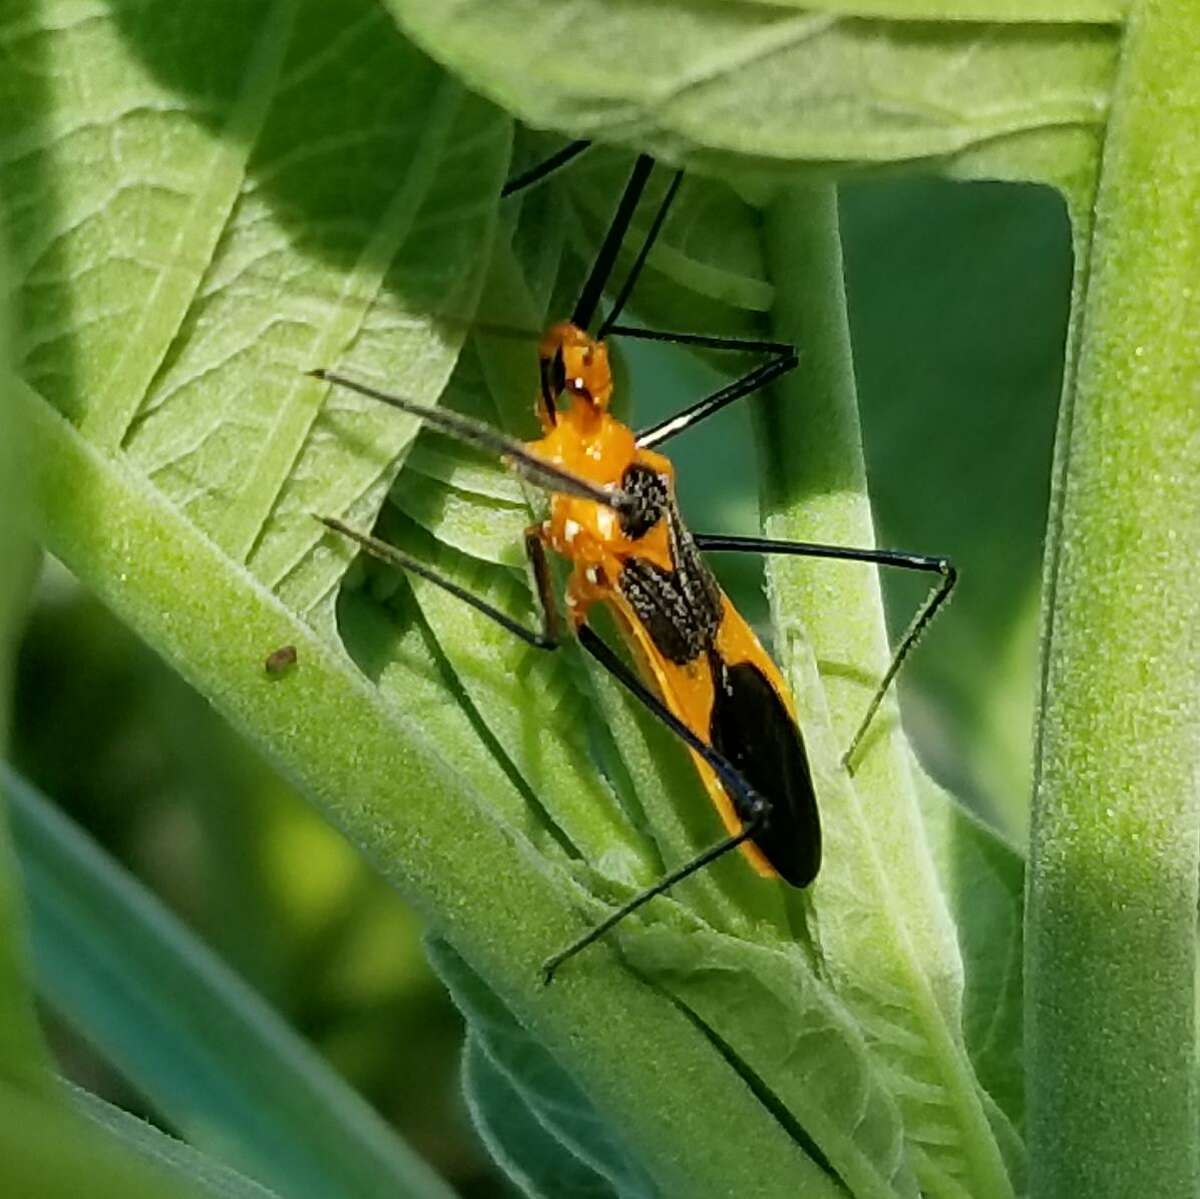 Assassin bugs are predatory insects that are considered beneficial for the garden.